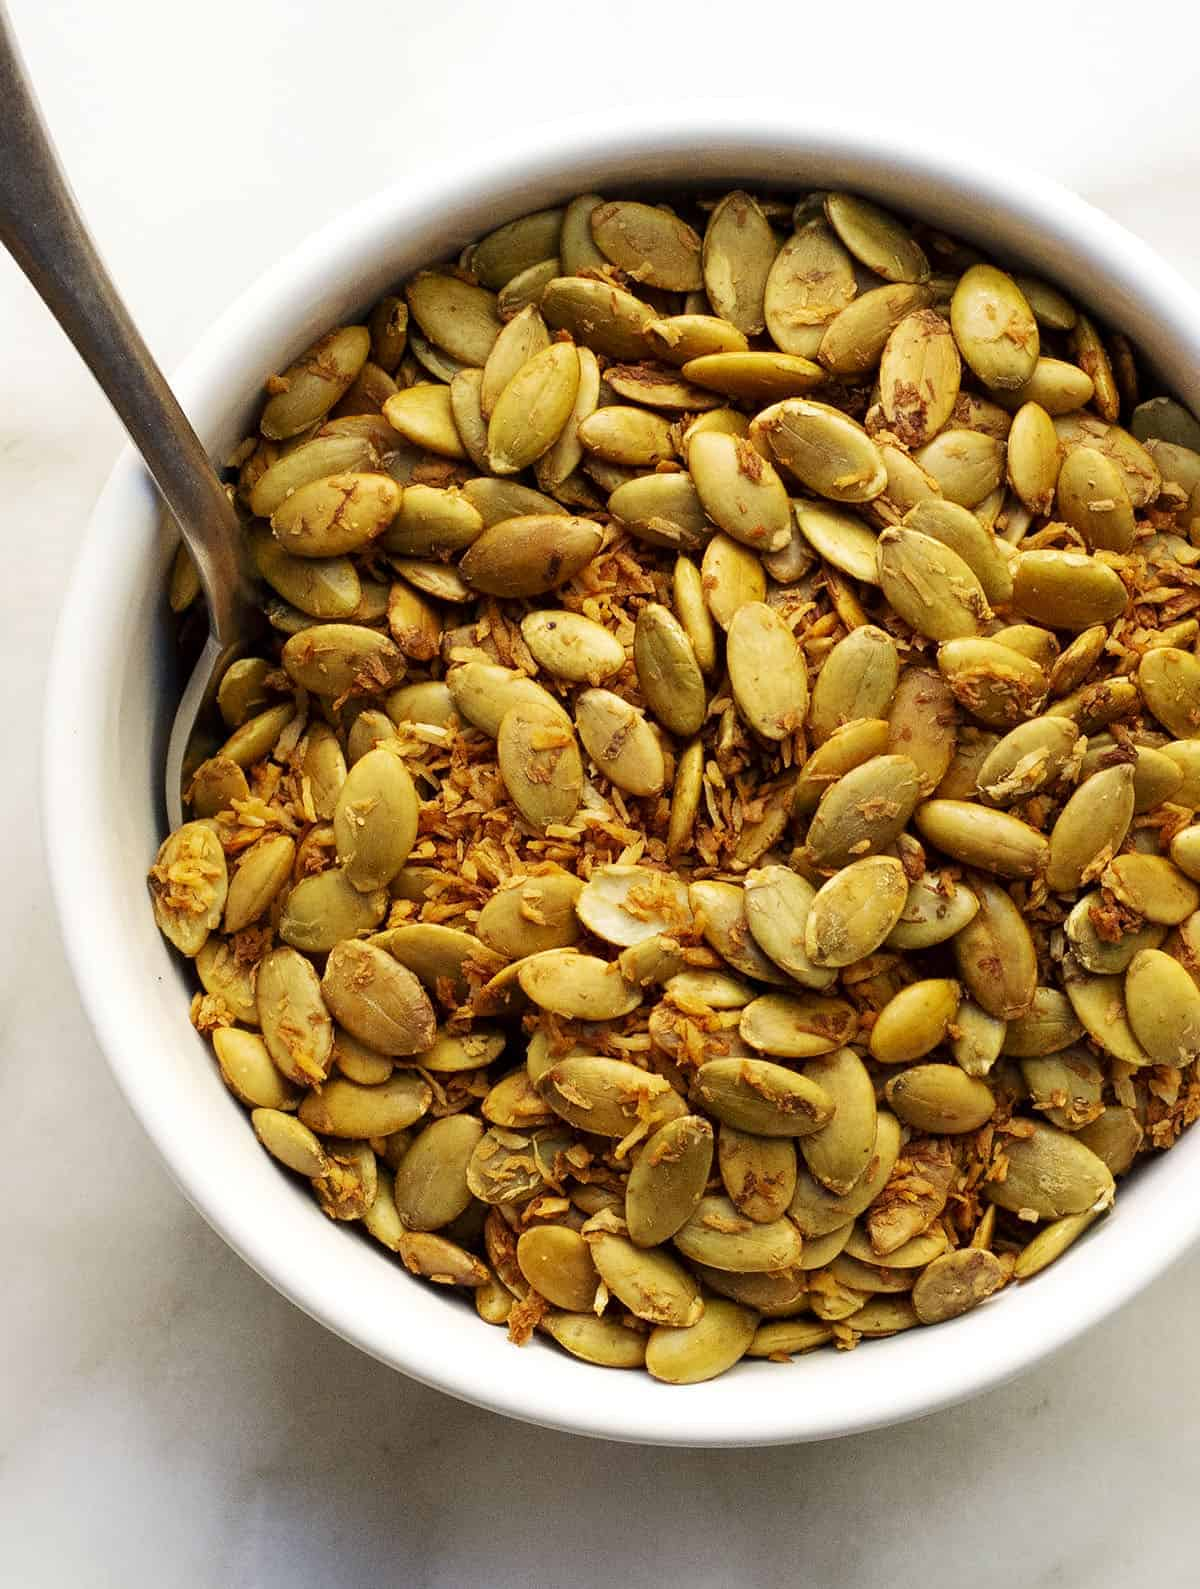 Toasted Coconut and Pumpkin Seeds in a white bowl